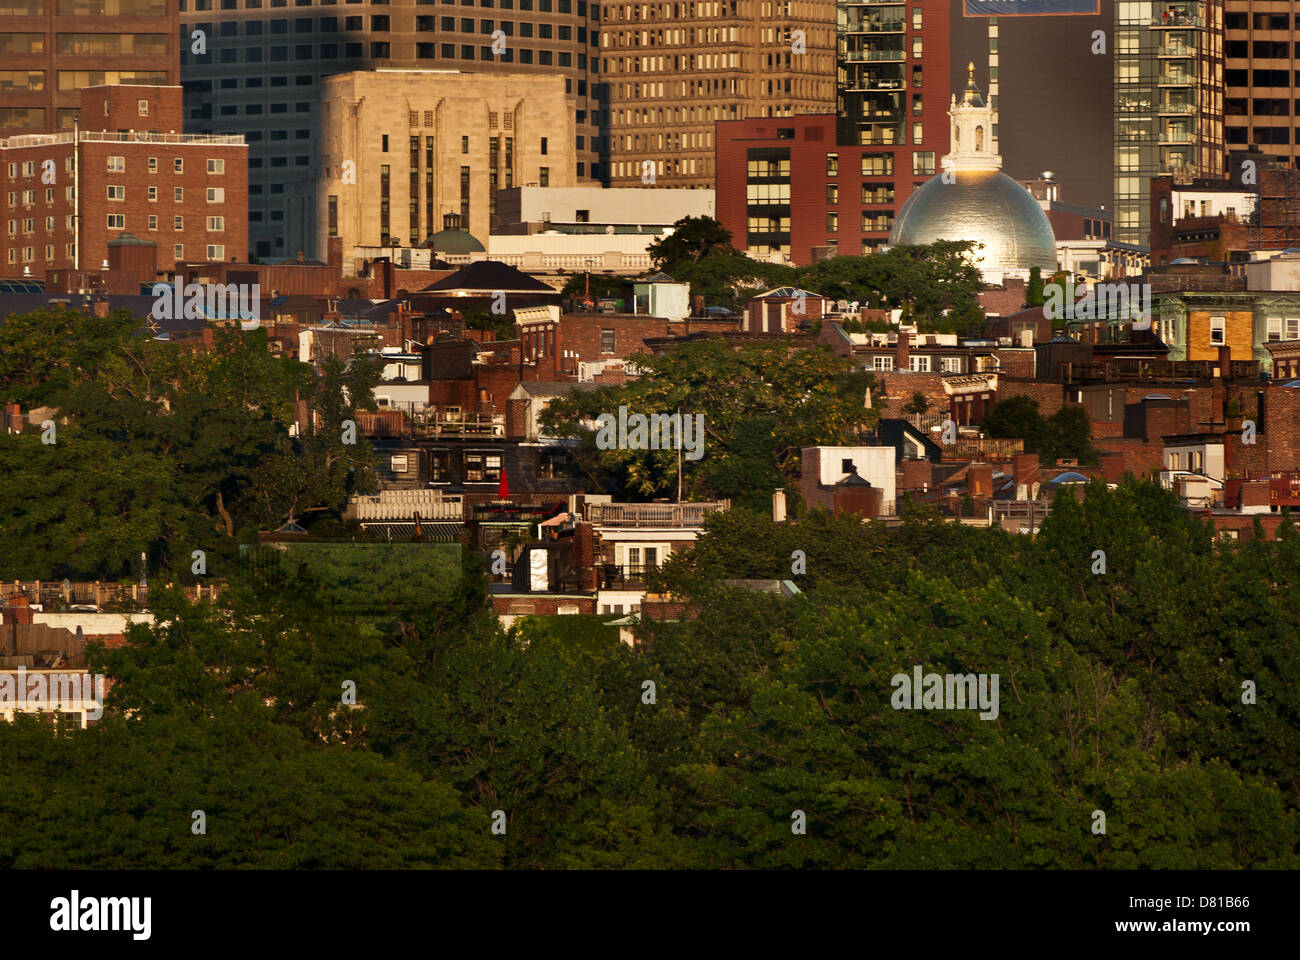 A closeup view of Beacon Hill in Boston as seen from across the Charles River - Stock Image